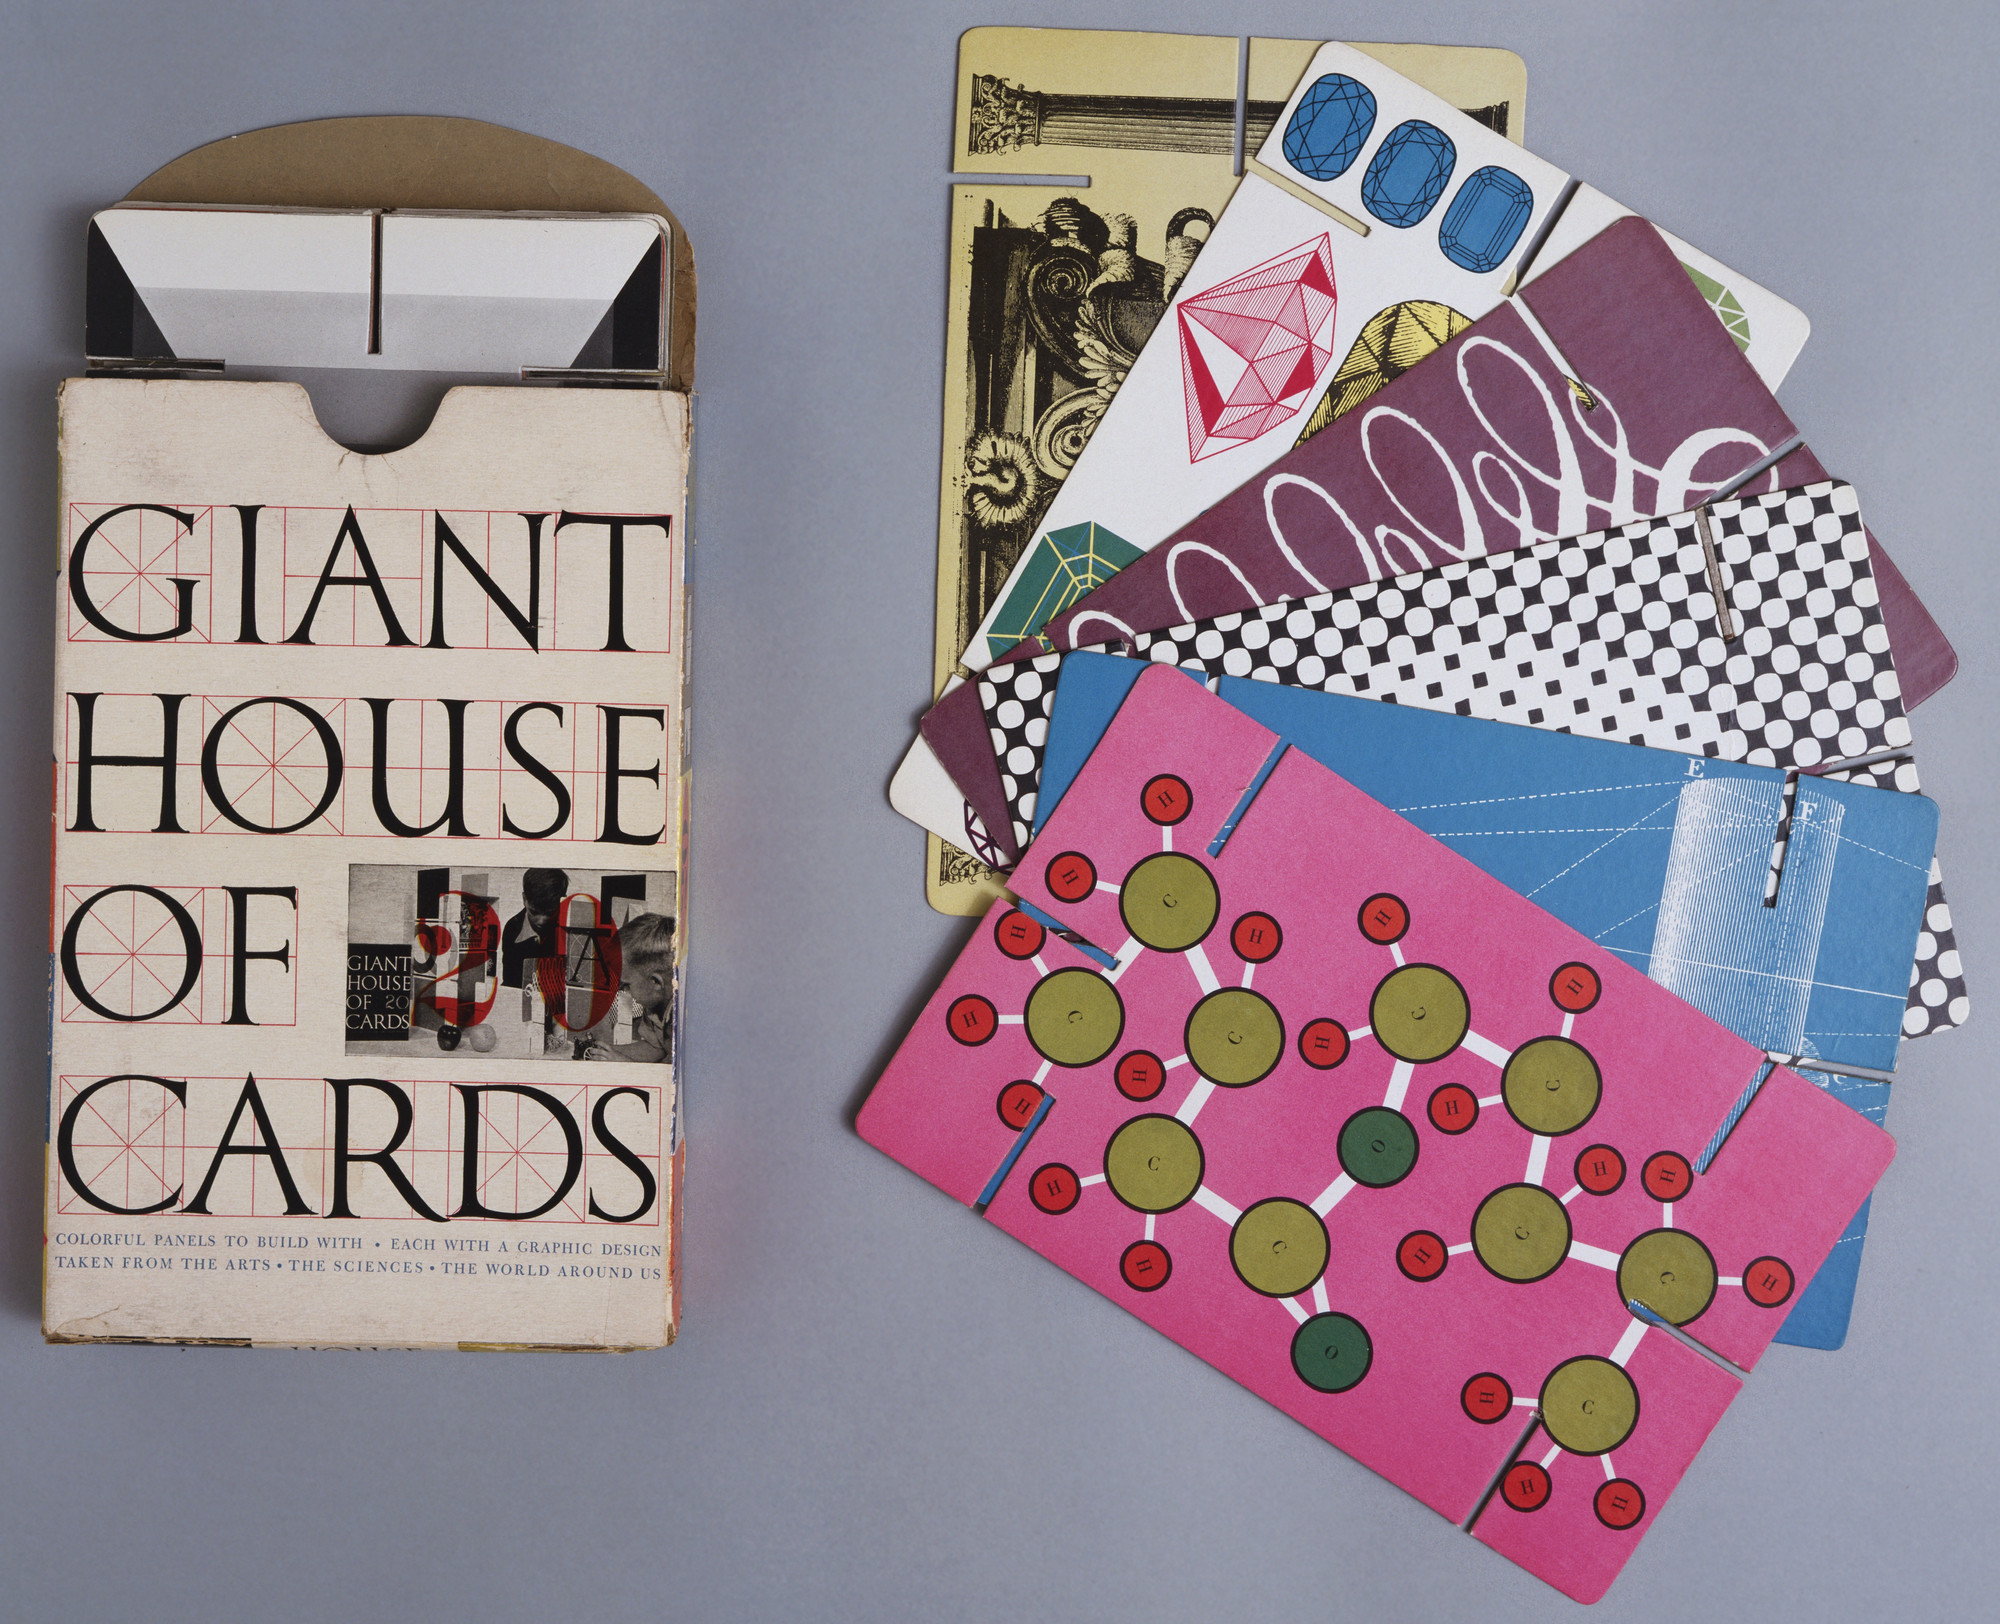 Charles Eames, Ray Eames. House of Cards (giant size). 1954